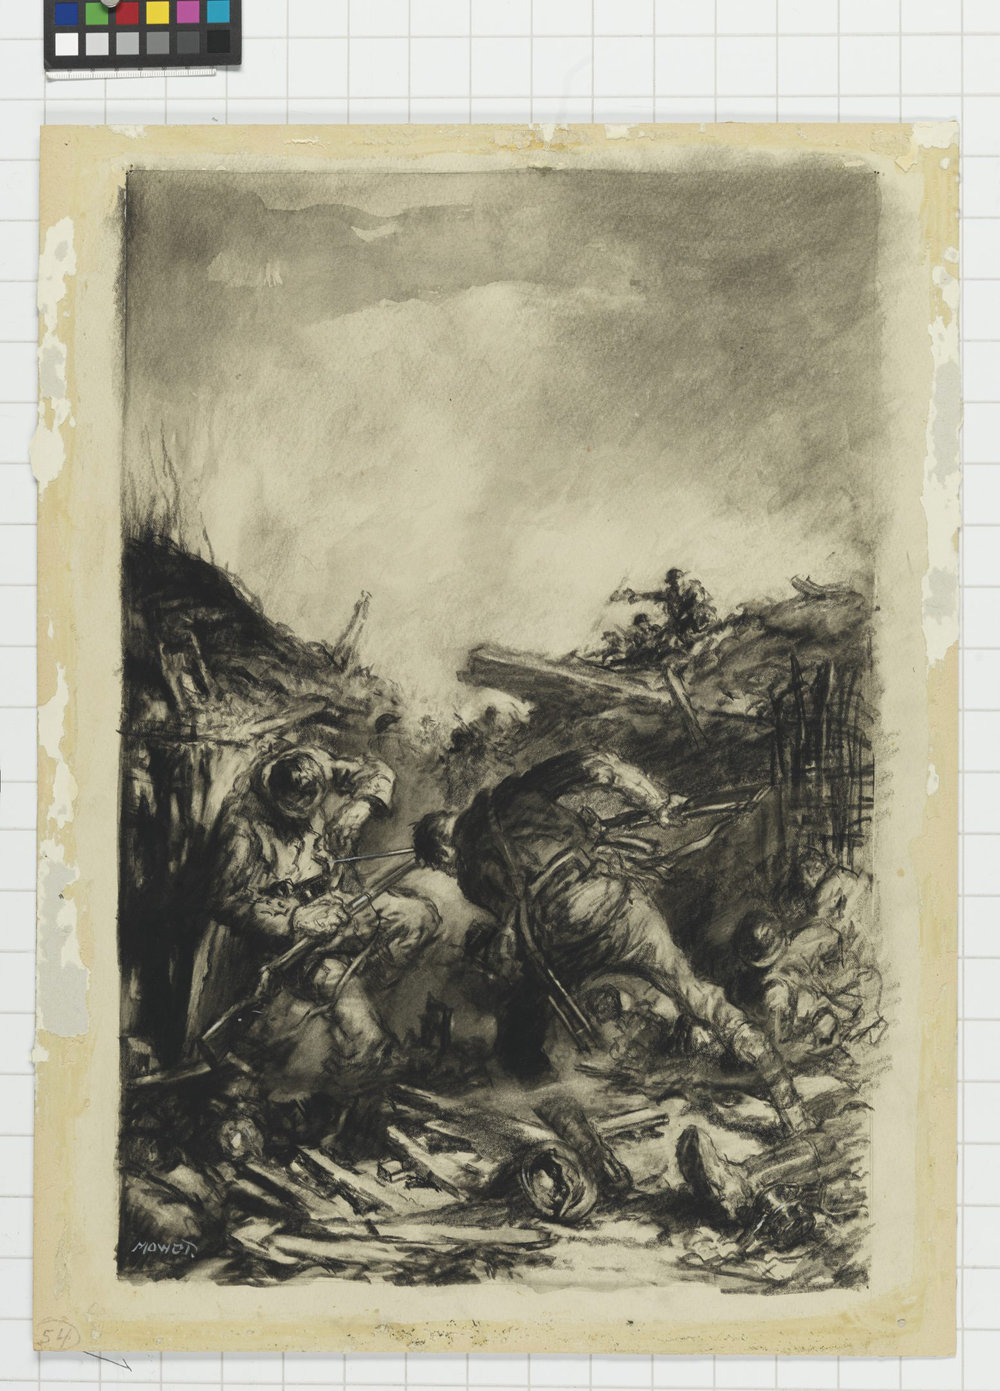 "When Thomas Dinesen made it across no man's land with bayonet fixed, he jumped into successive German trenches to silent enemy machine guns with his steel blade and Mills bombs. The limited confines of hand-to-hand trench warfare did not impede Dinesen's attack, who often had to press home with his bayonet. His actions of August 12, 1918 at Parvillers, near Amiens, earned him the Victoria Cross. (""trench fight"" by h.j. mowat, canadian war museum,   19710261-0434  )"